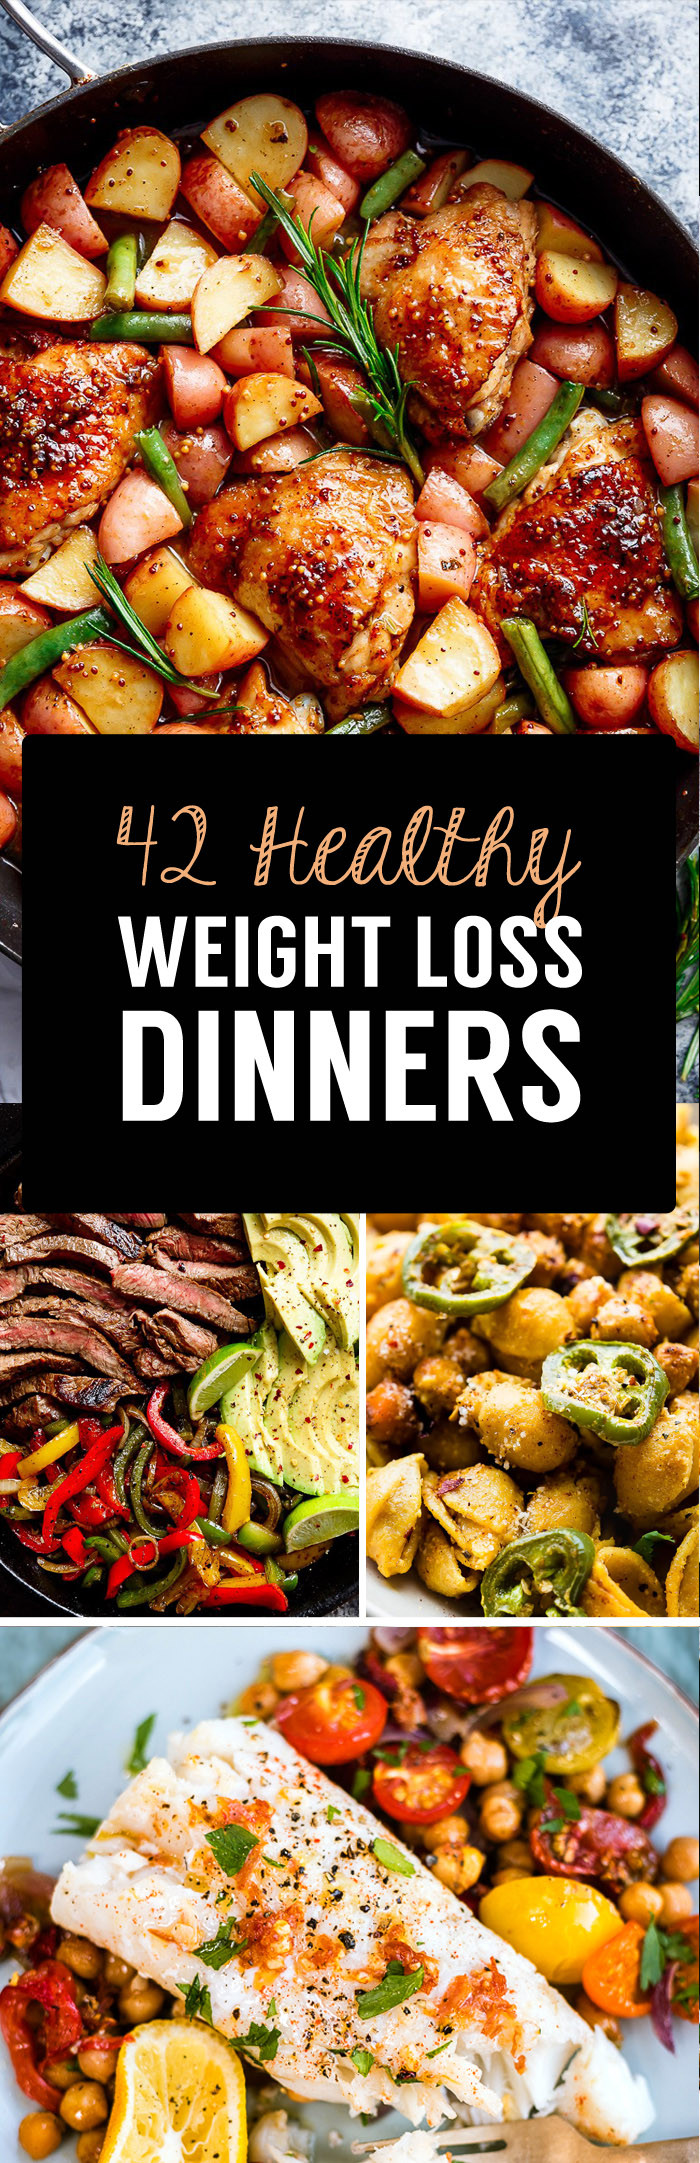 Healthy Dinner Ideas For Weight Loss  42 Weight Loss Dinner Recipes That Will Help You Shrink